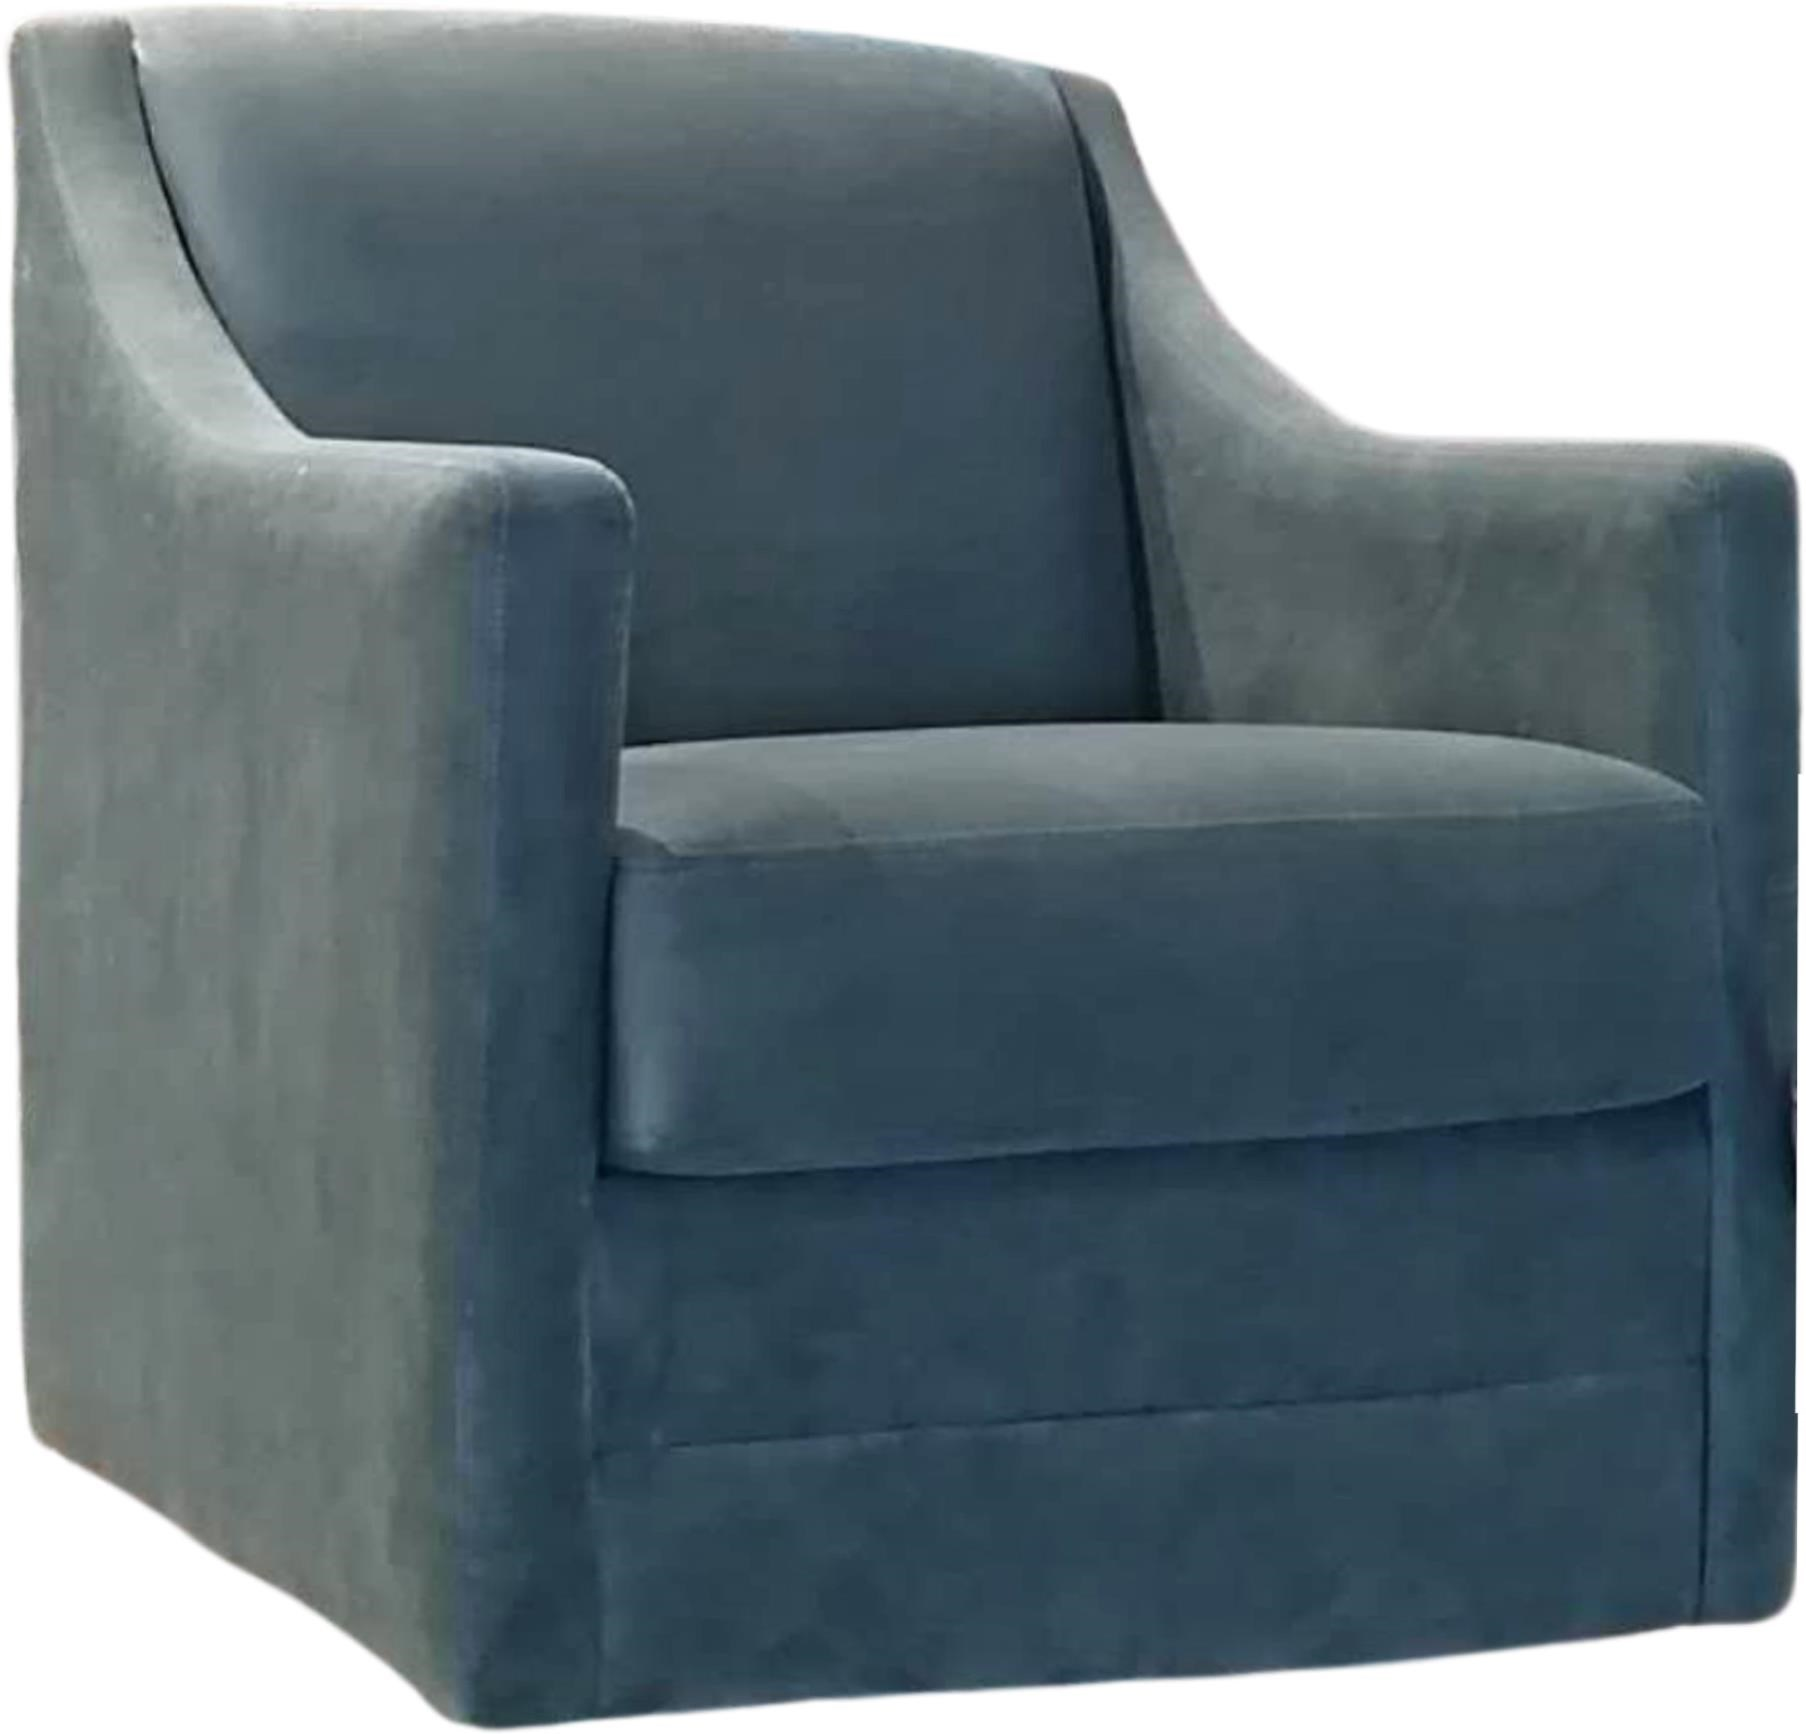 2443 2443 Swivel Chair in Dallas Aqua43 by Decor-Rest at Upper Room Home Furnishings